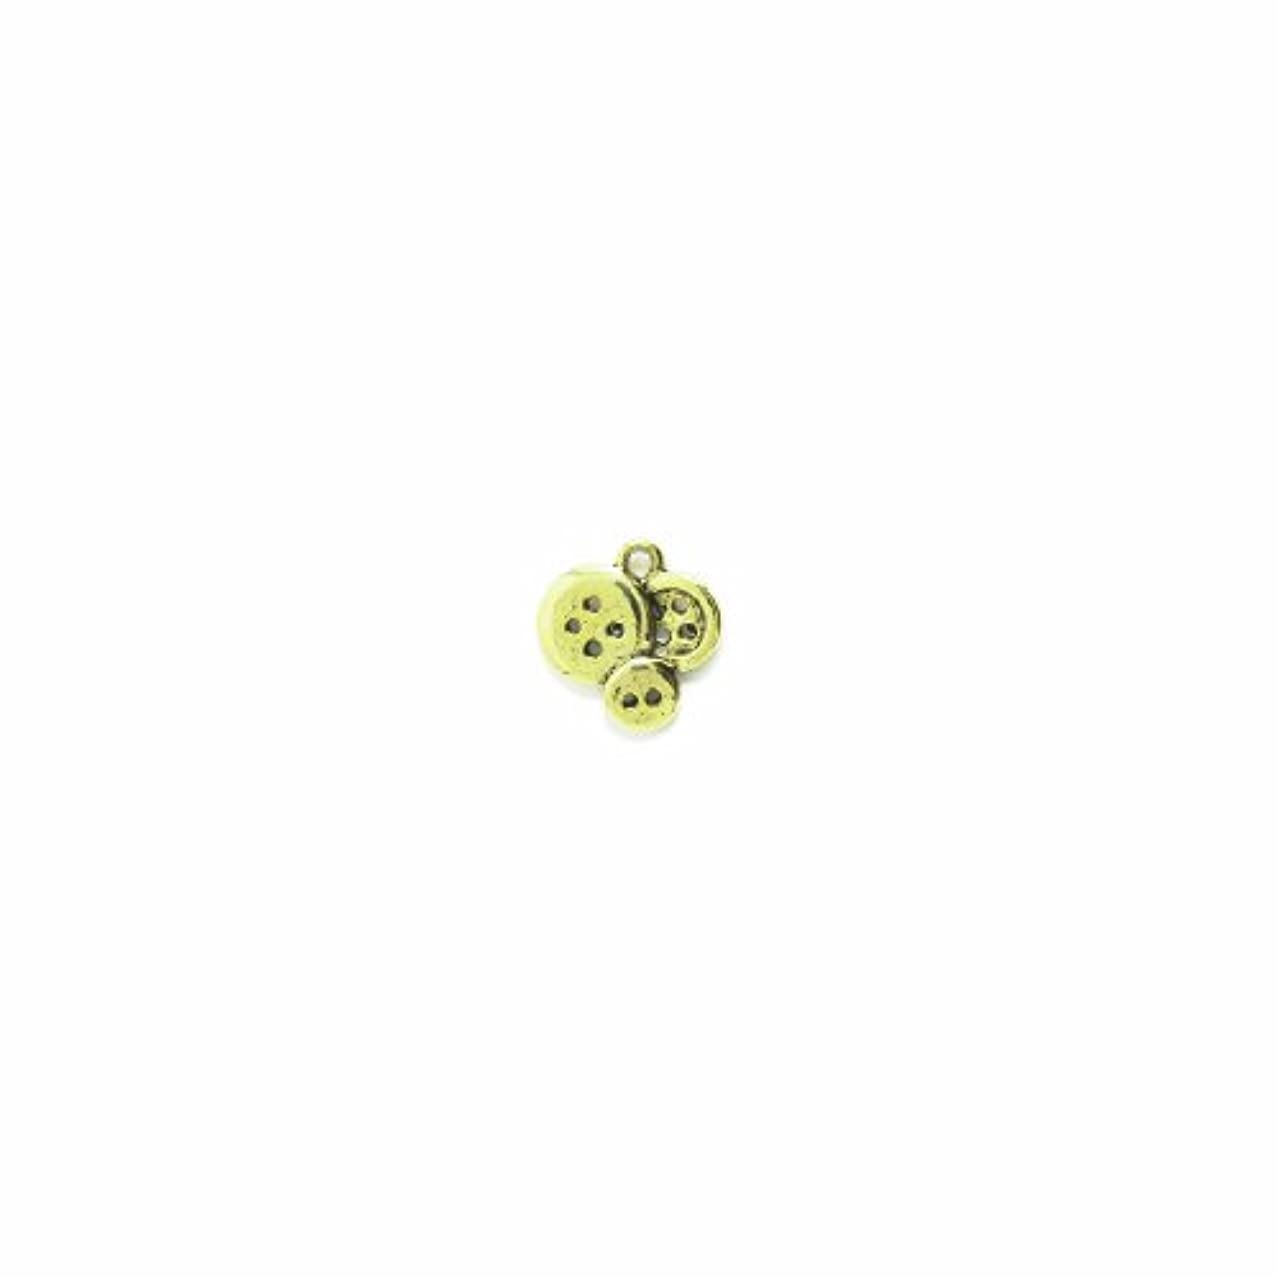 Shipwreck Beads Pewter Buttons Charm, Antique Gold, 15 by 15mm, 6-Piece